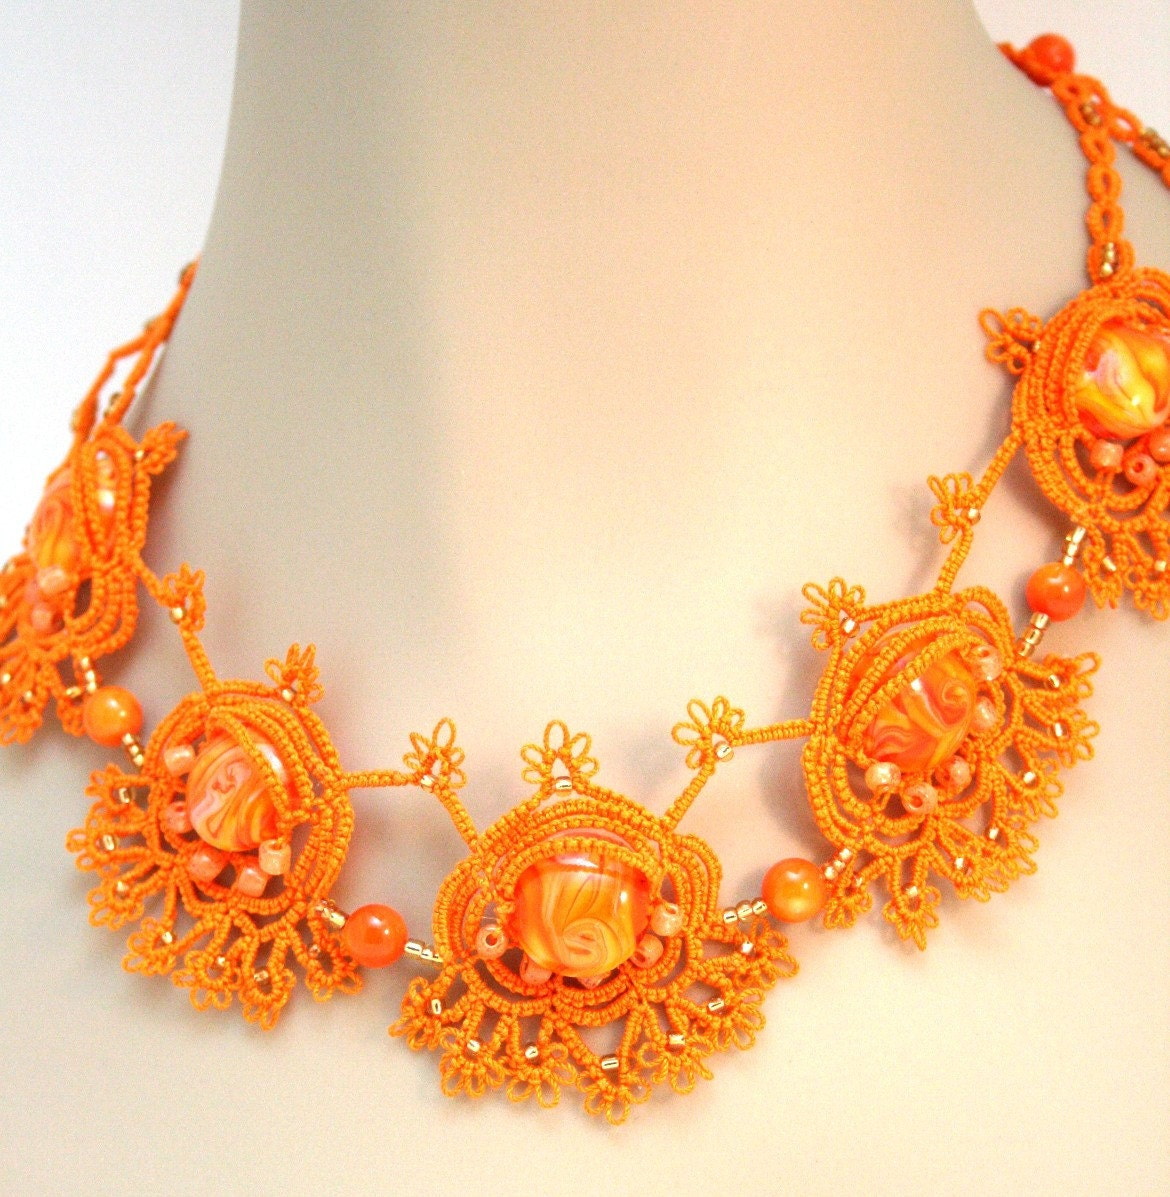 Creamsicle necklace and earrings